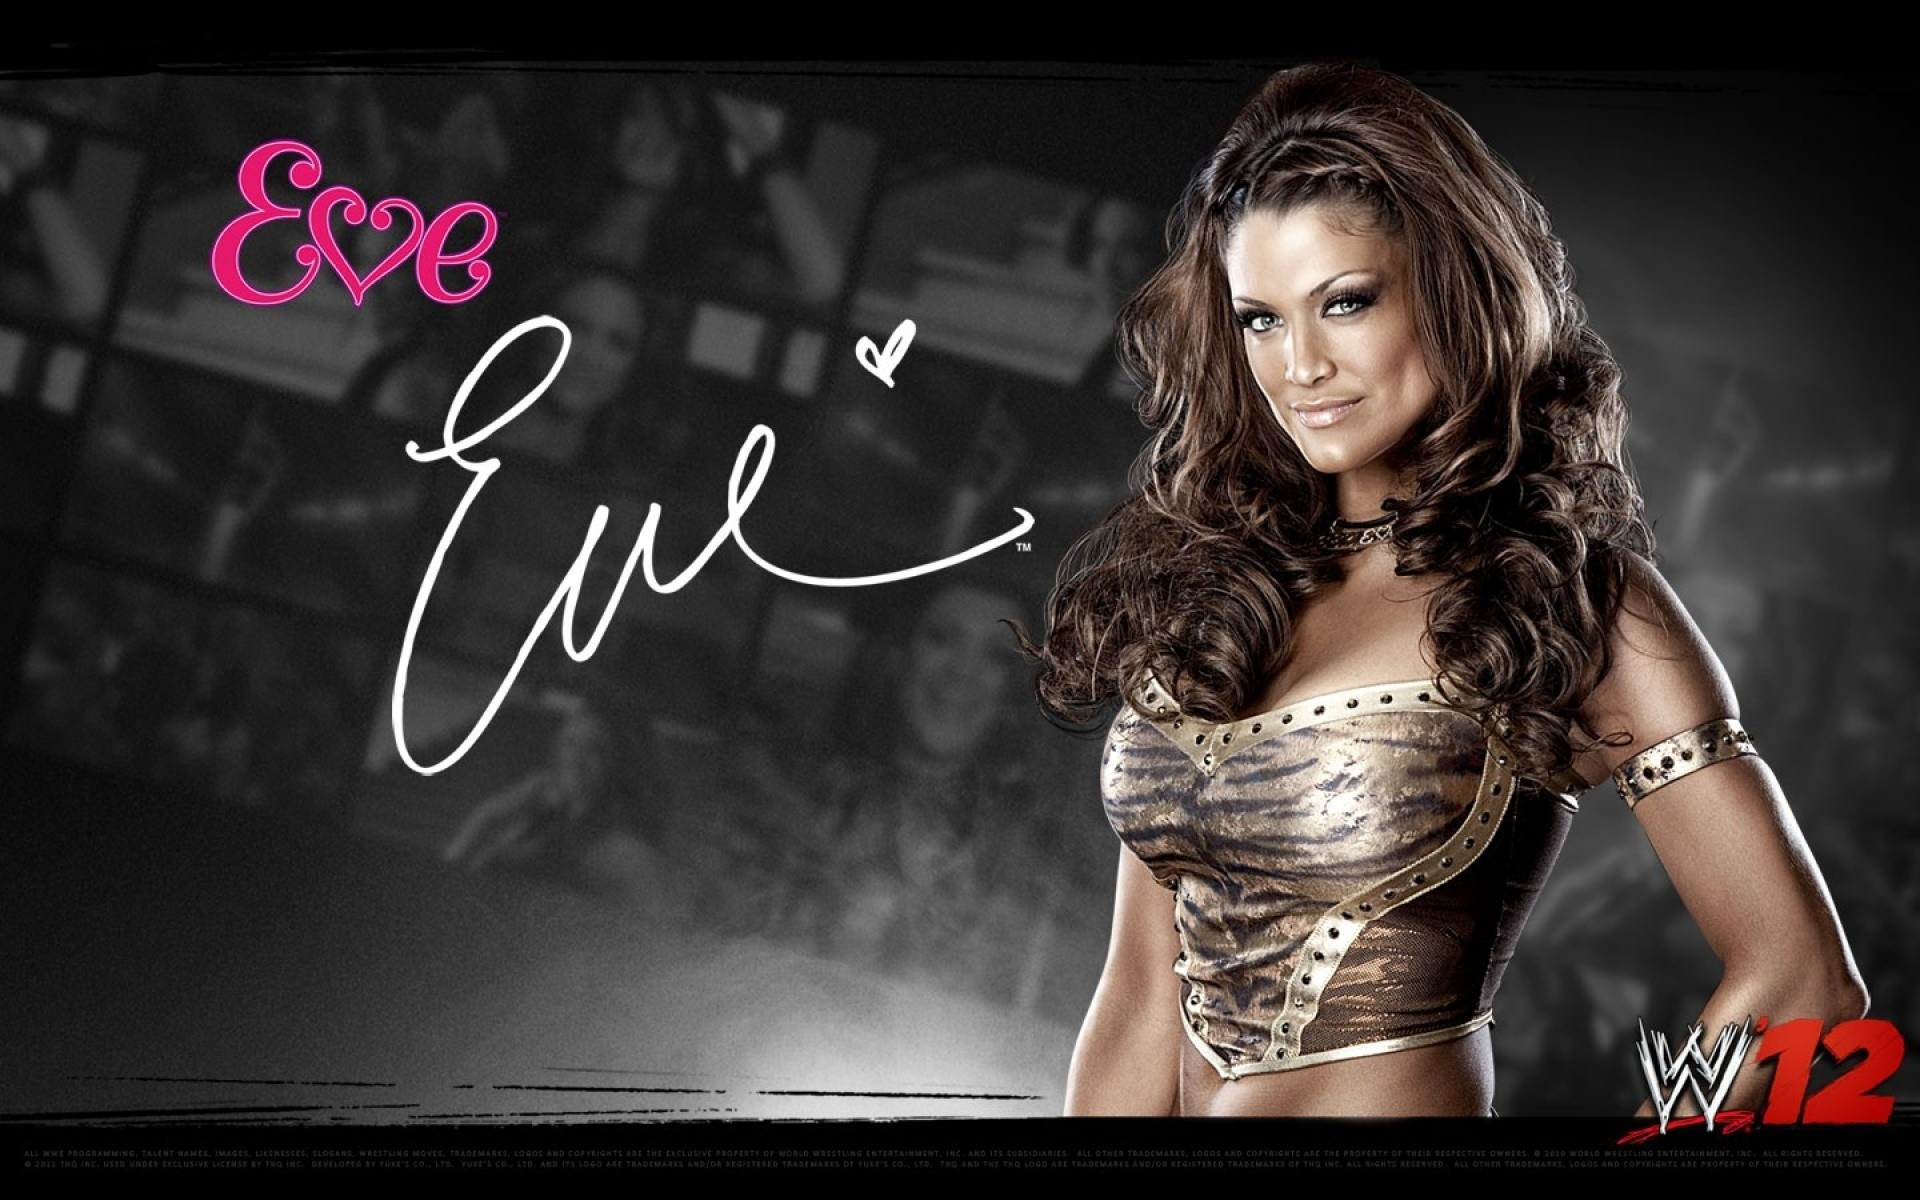 Wwe divas hd wallpaper 64 images - Wwe divas wallpapers ...